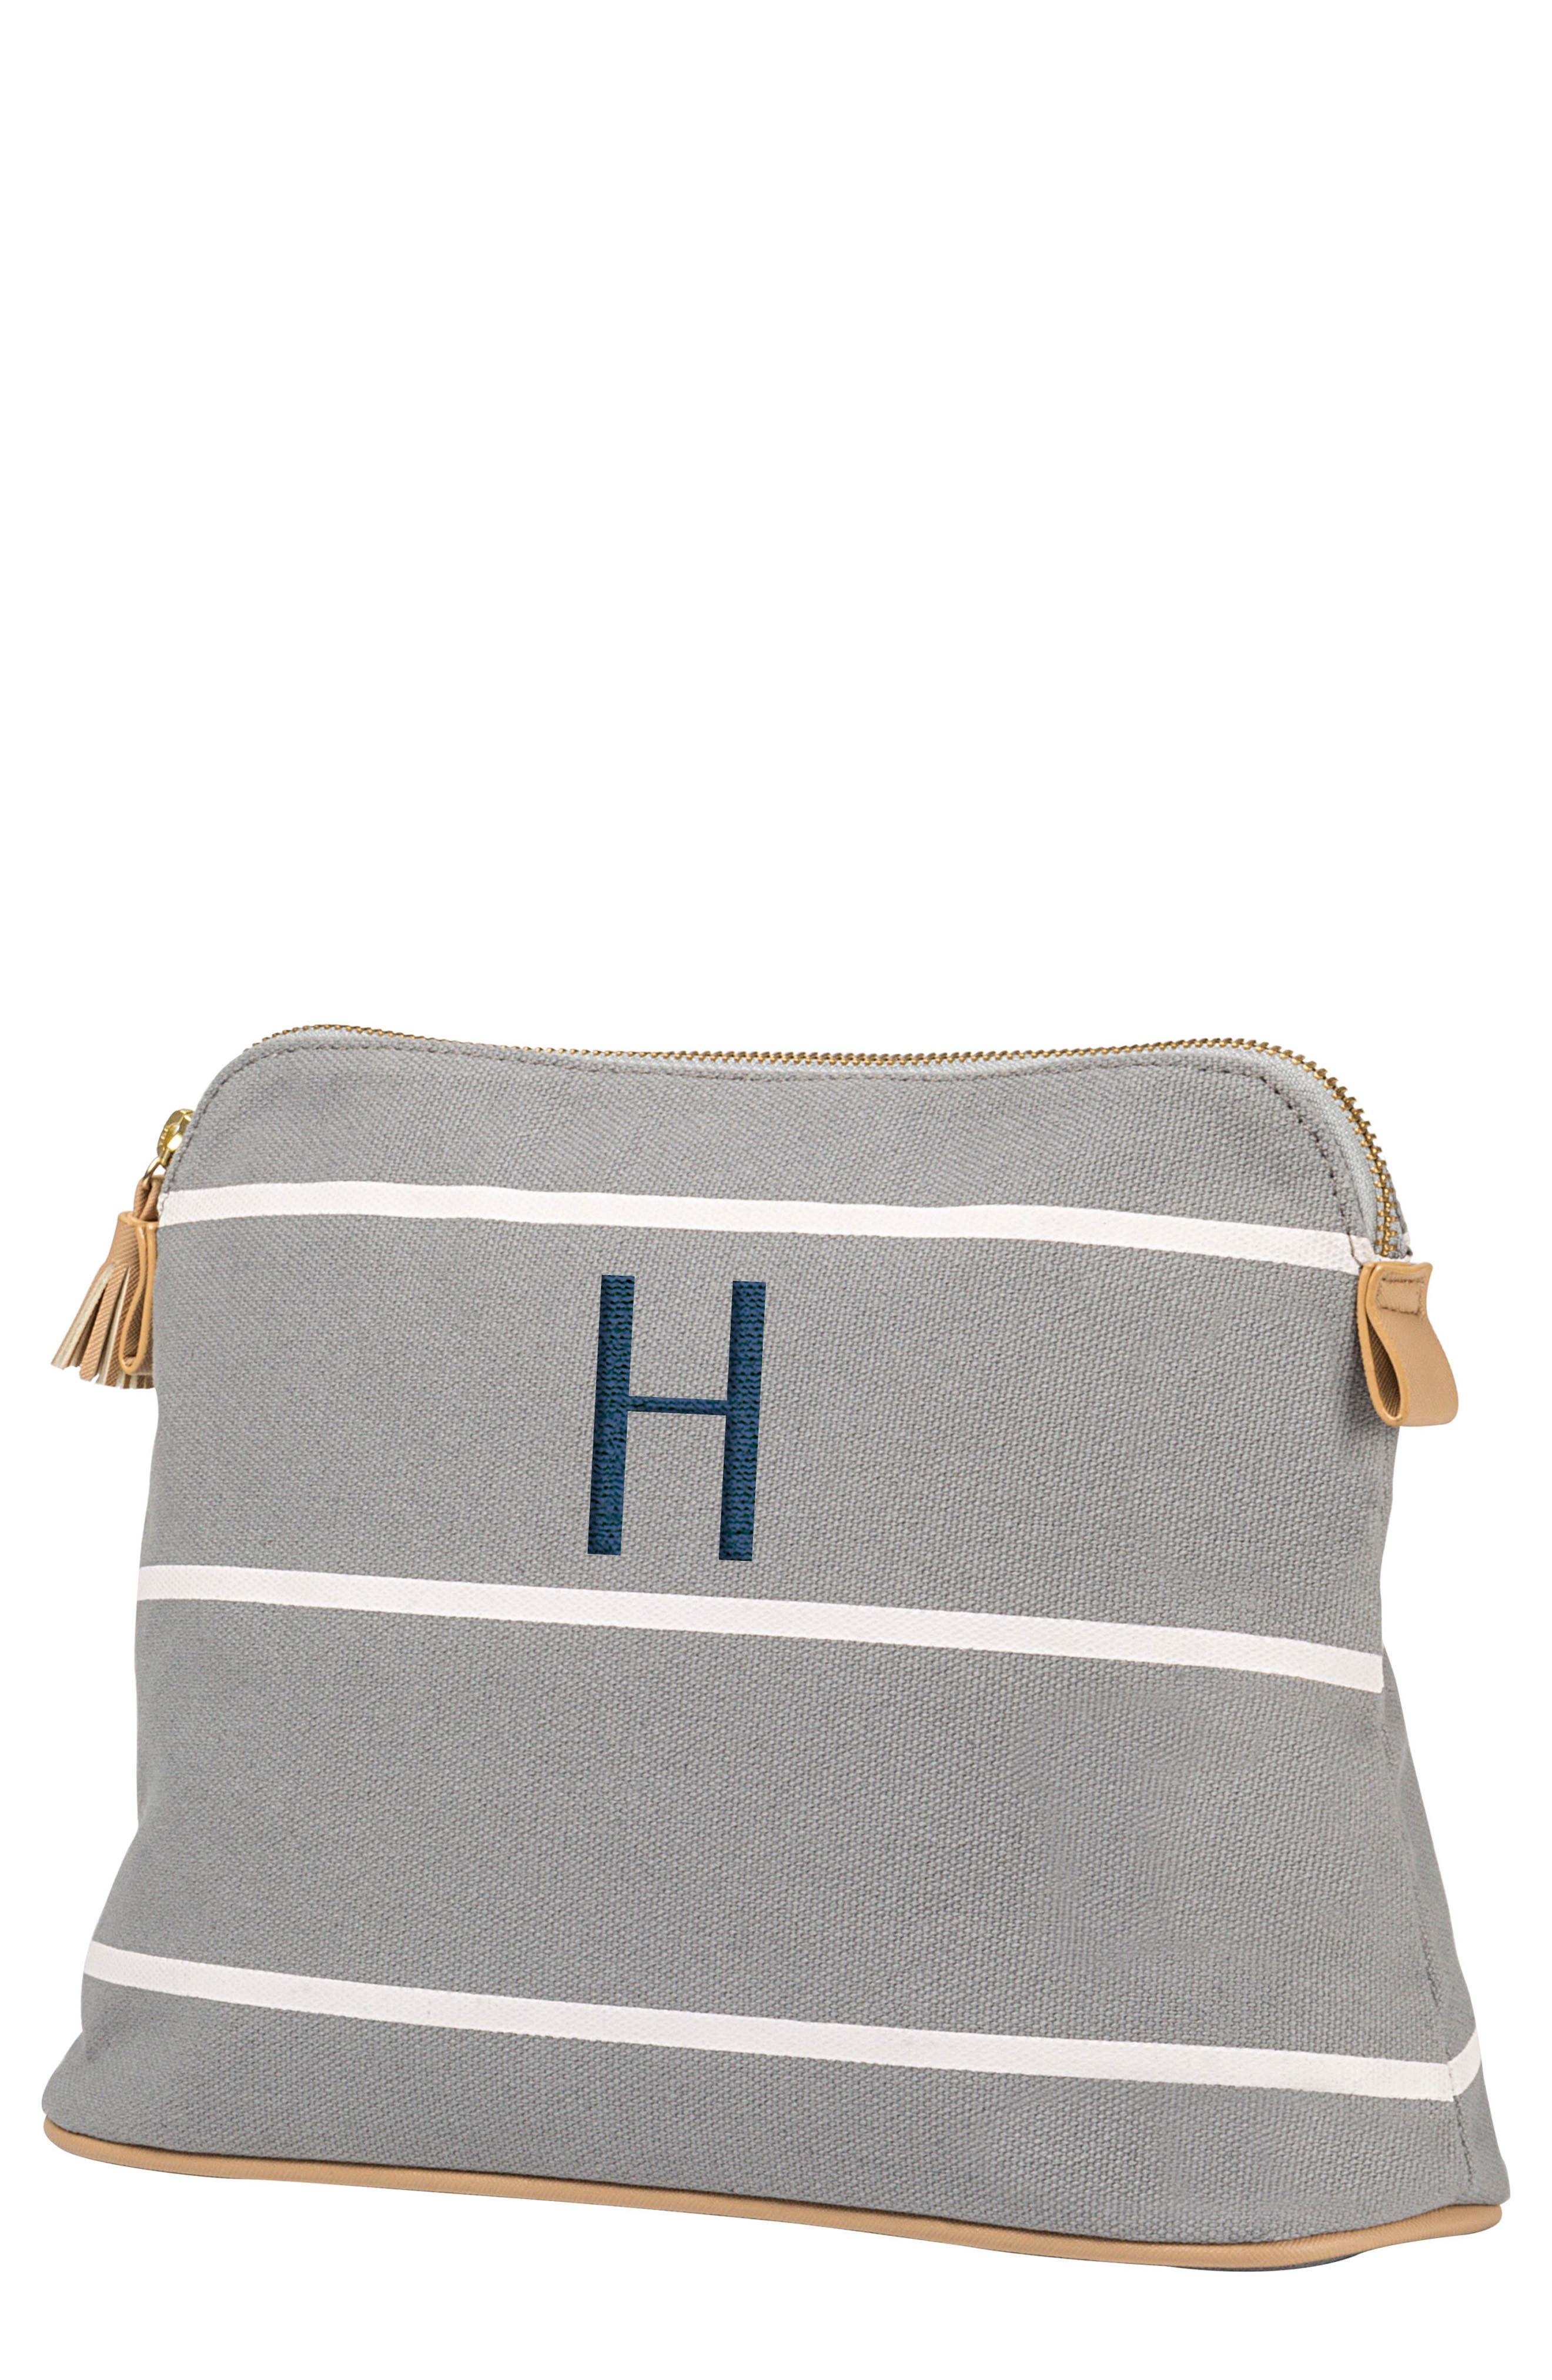 Monogram Cosmetics Bag,                             Main thumbnail 1, color,                             GREY H